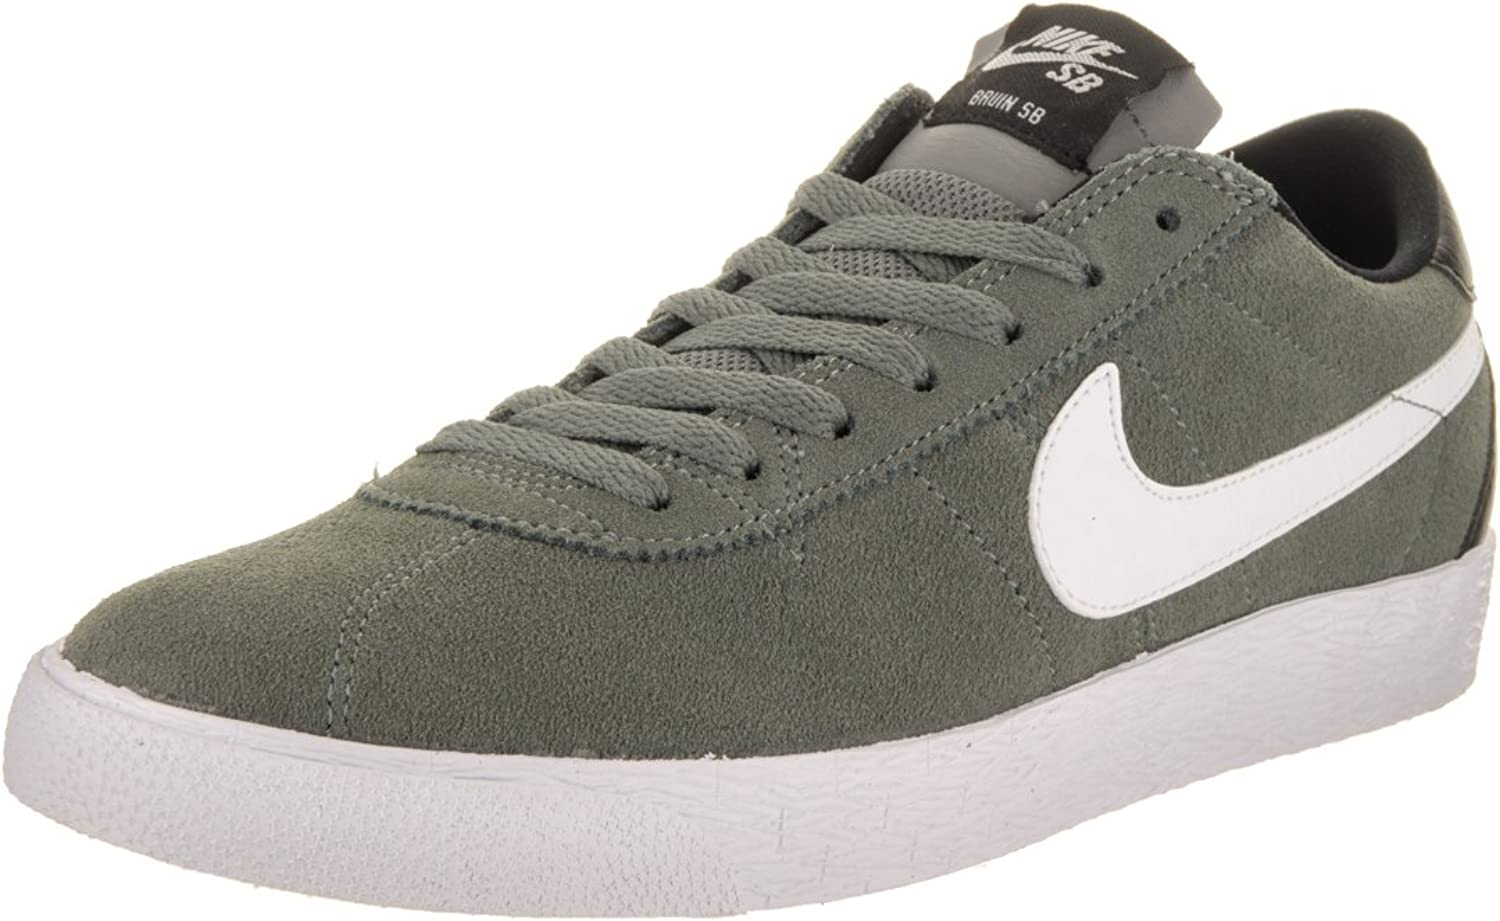 Nike Womens Dual Fusion Tr Hit Fade Low Top Lace Up Running Sneaker